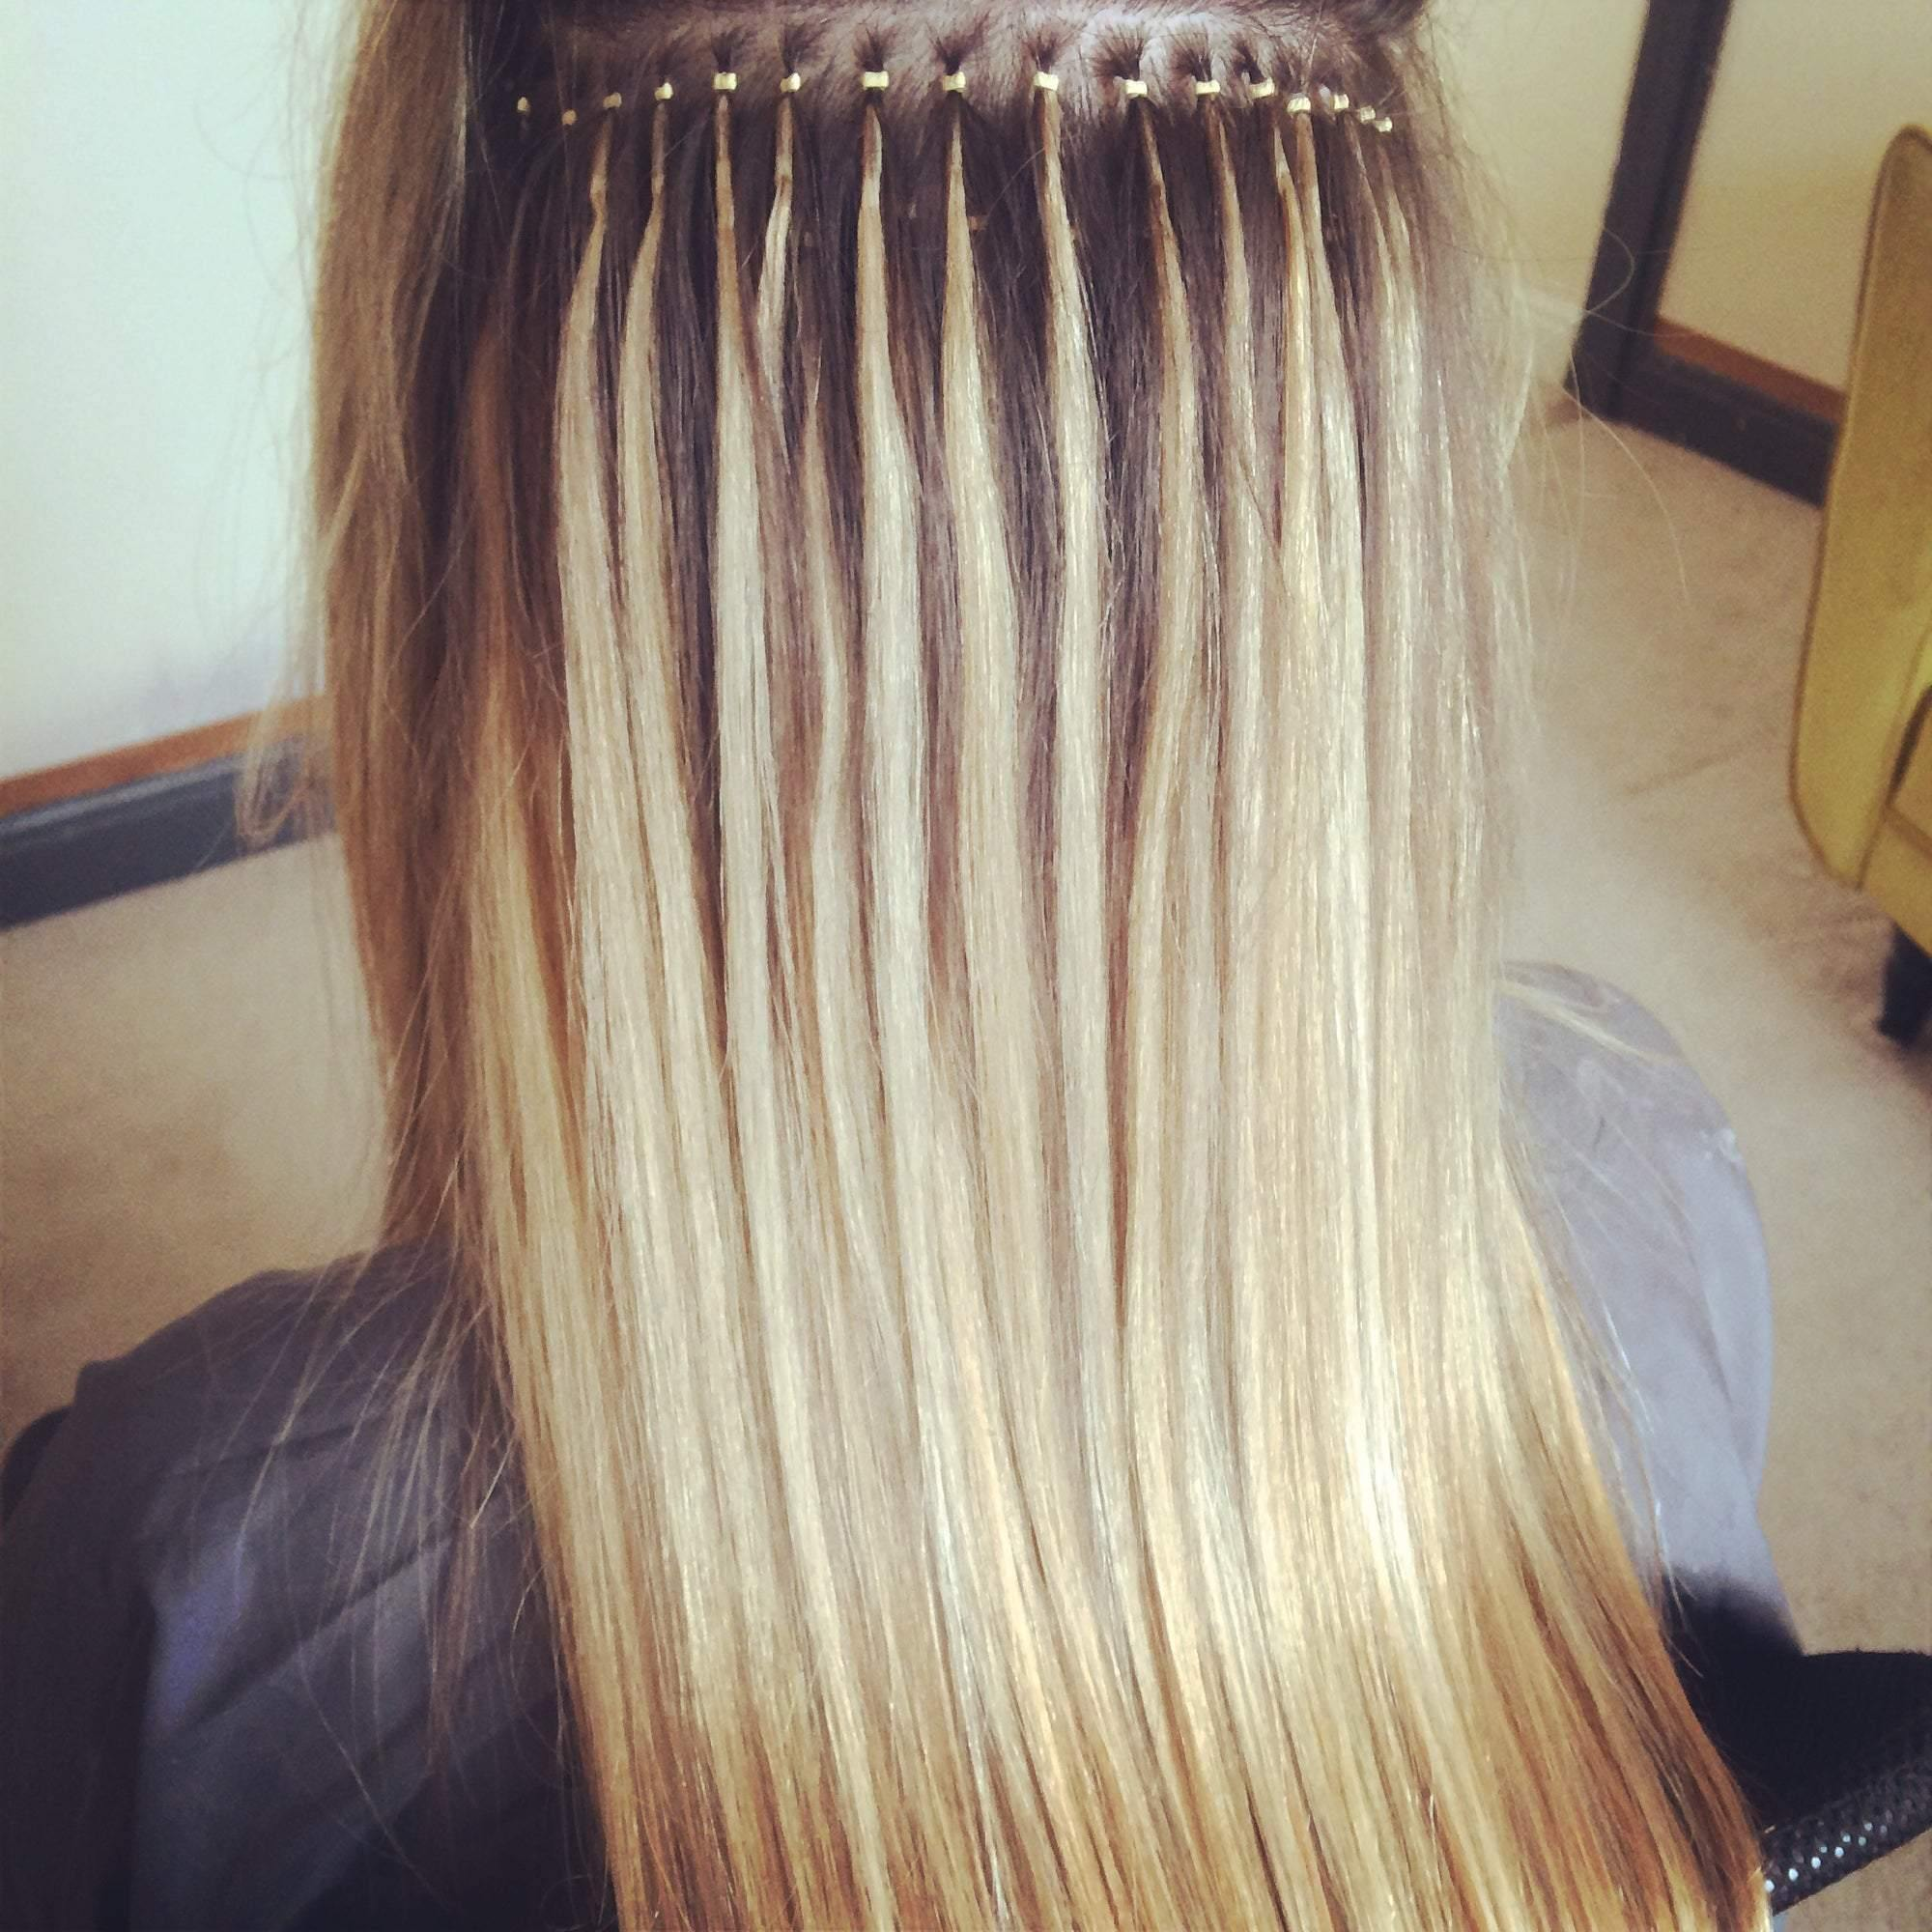 Online Nano Hair Extension Training